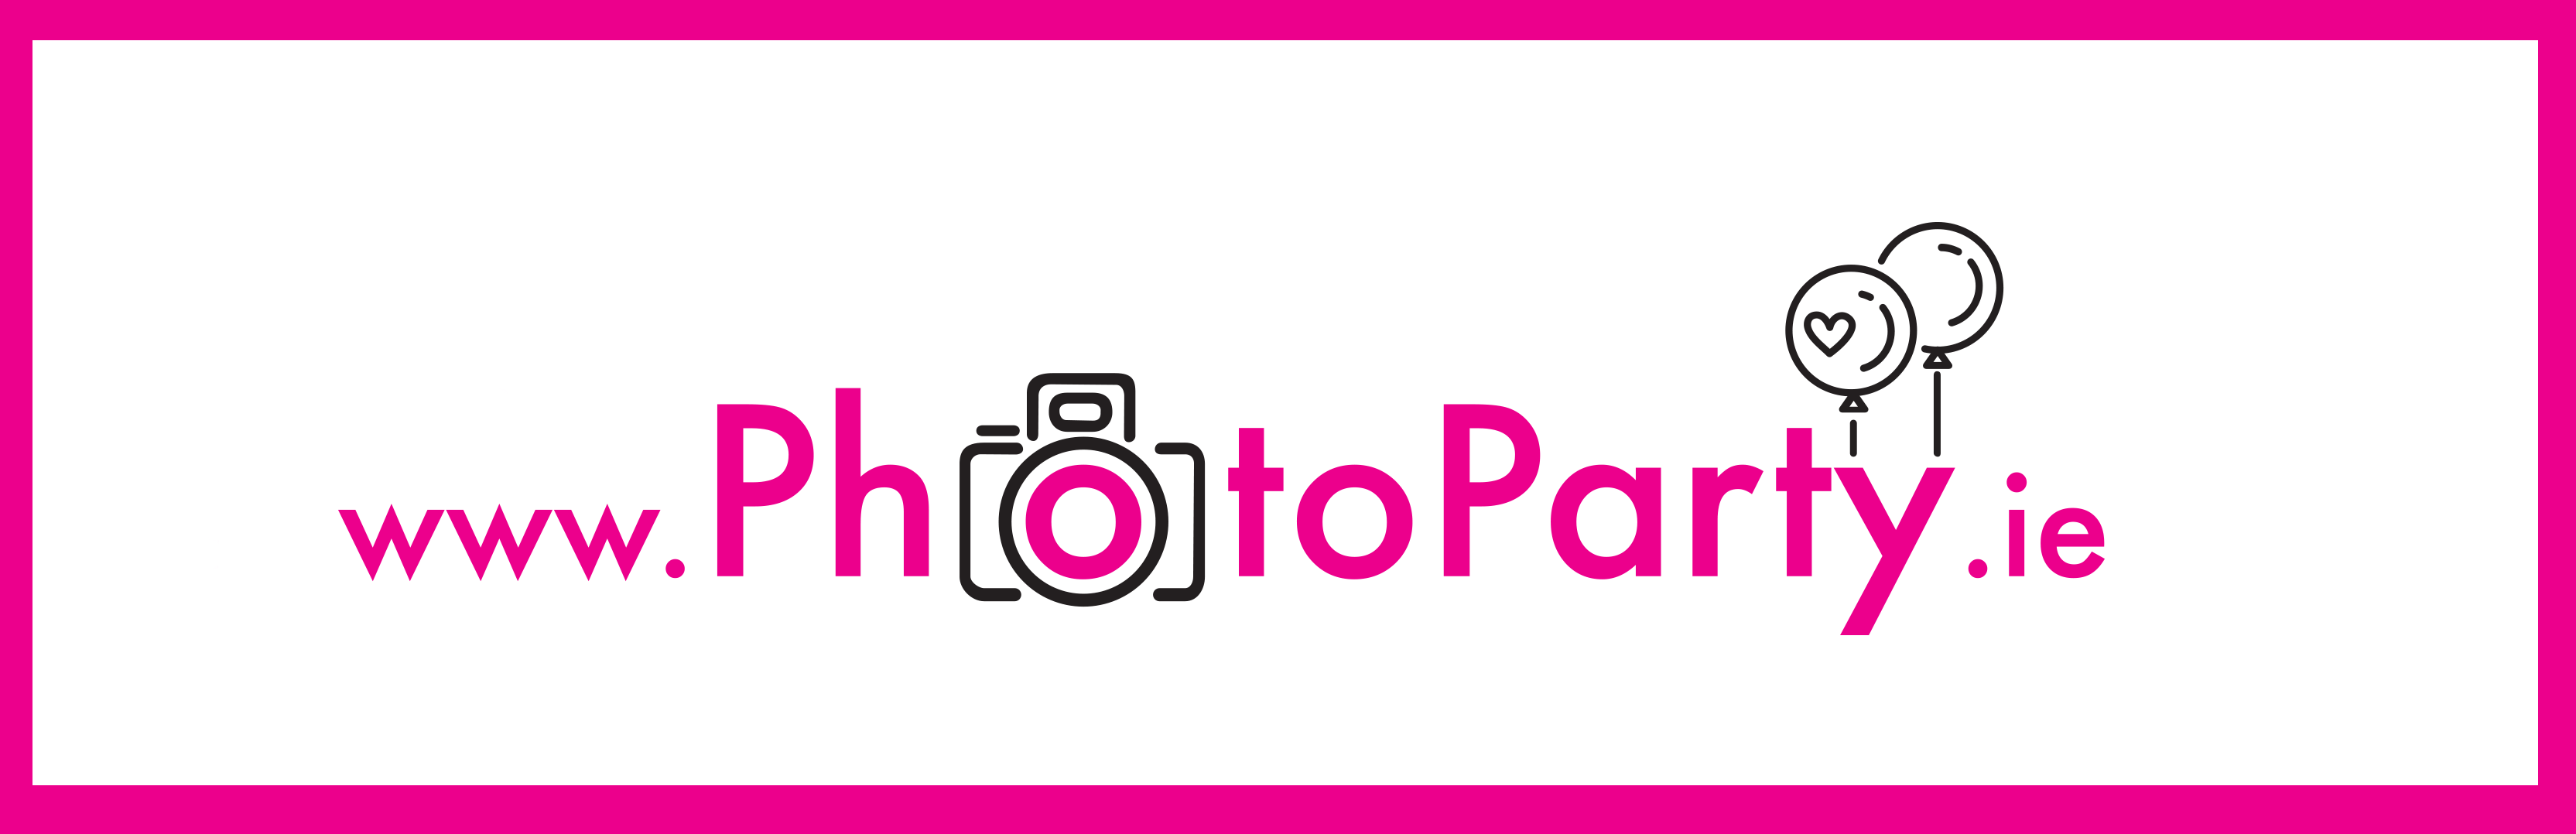 photoparty website